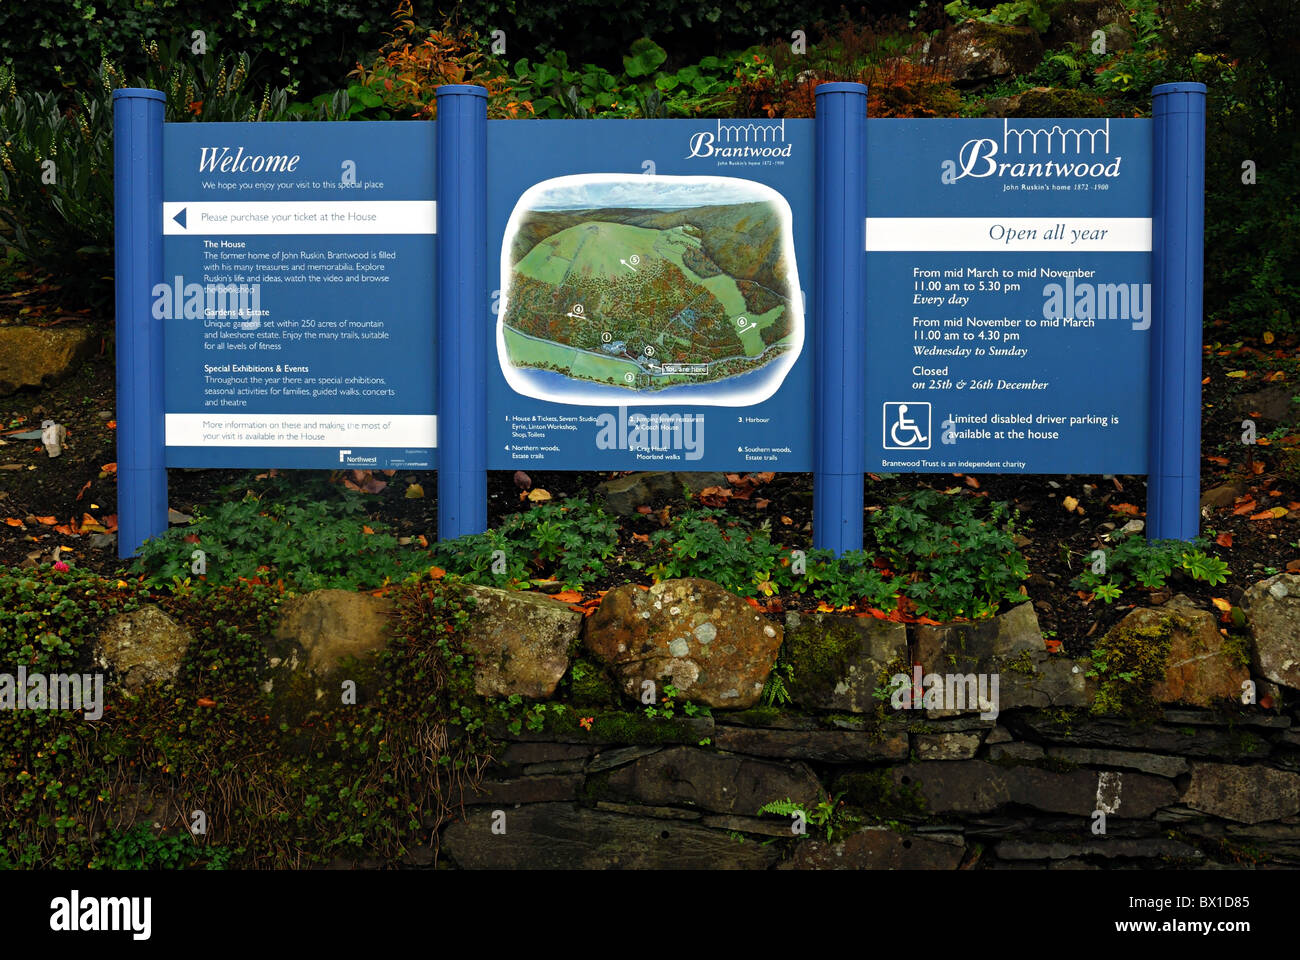 Brantwood House Information Board - Stock Image